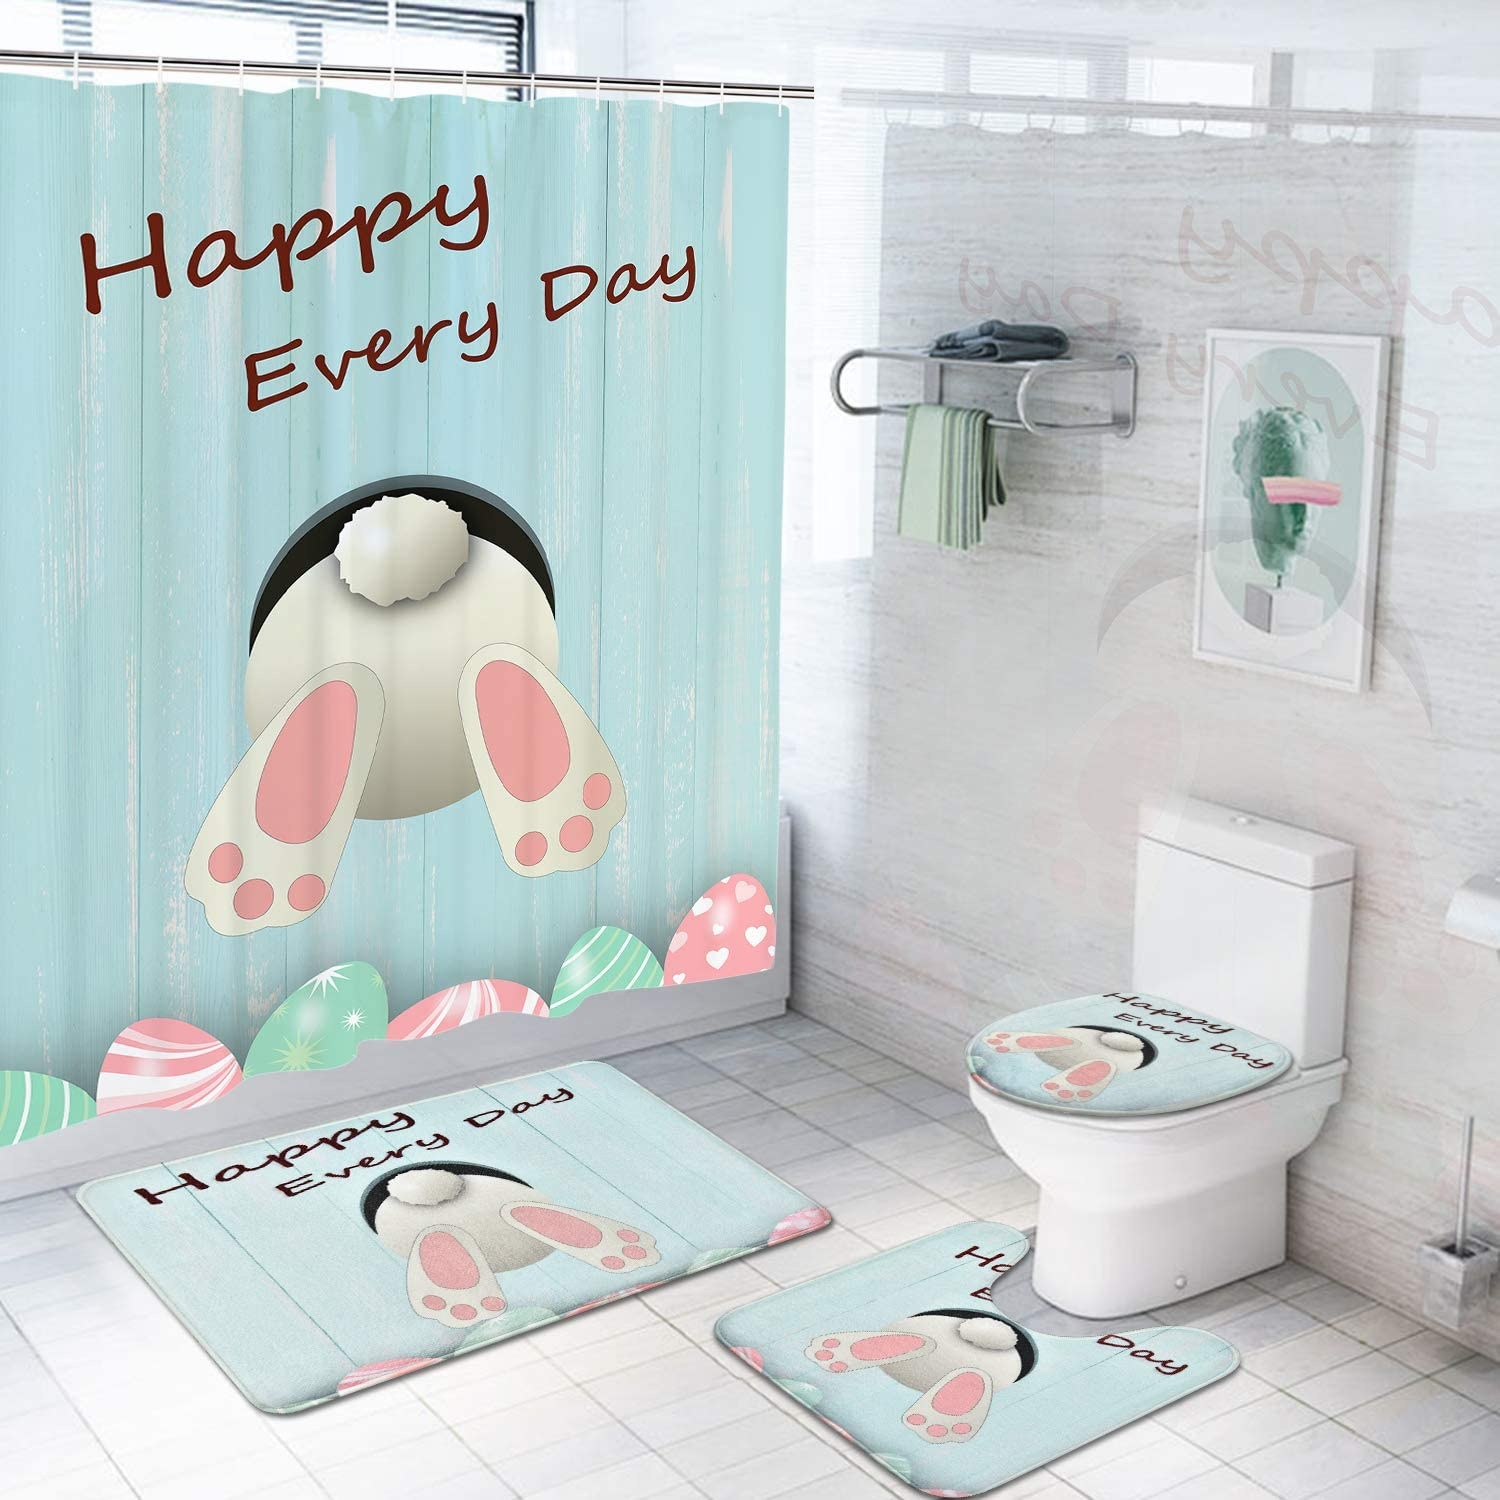 Alishomtll 8 Pcs Happy Easter Shower Curtain Sets with Non-Slip Rugs,  Toilet Lid Cover, Bath Mat and 8 Hooks Funny Rabbit Easter Eggs Durable  Shower